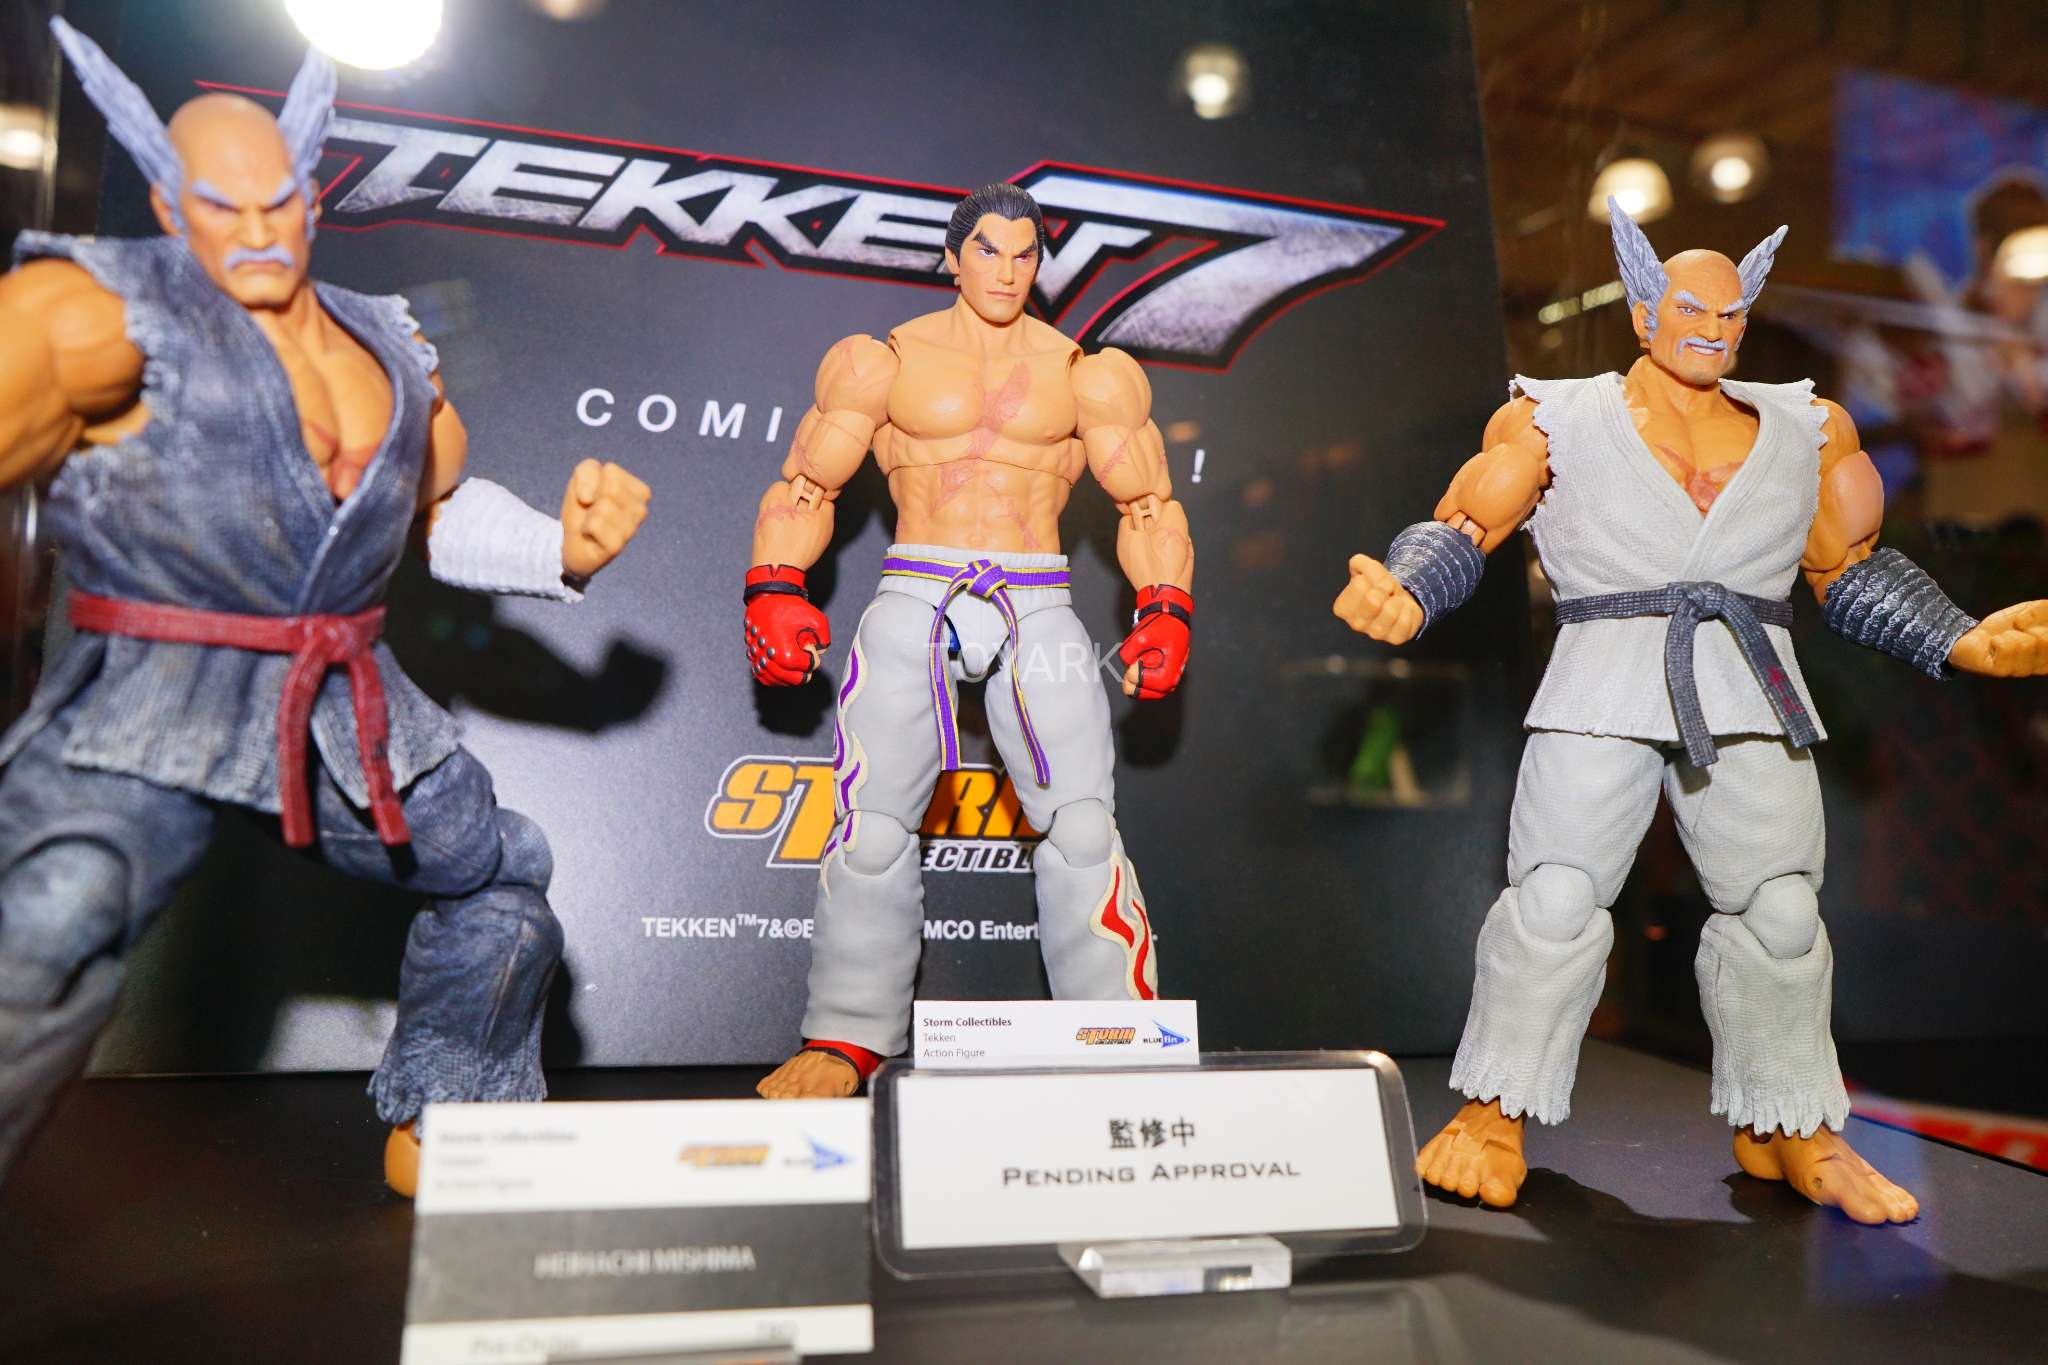 Toy Fair 2018 Gallery Storm King Of Fighters And Tekken At Bluefin Booth The Toyark News